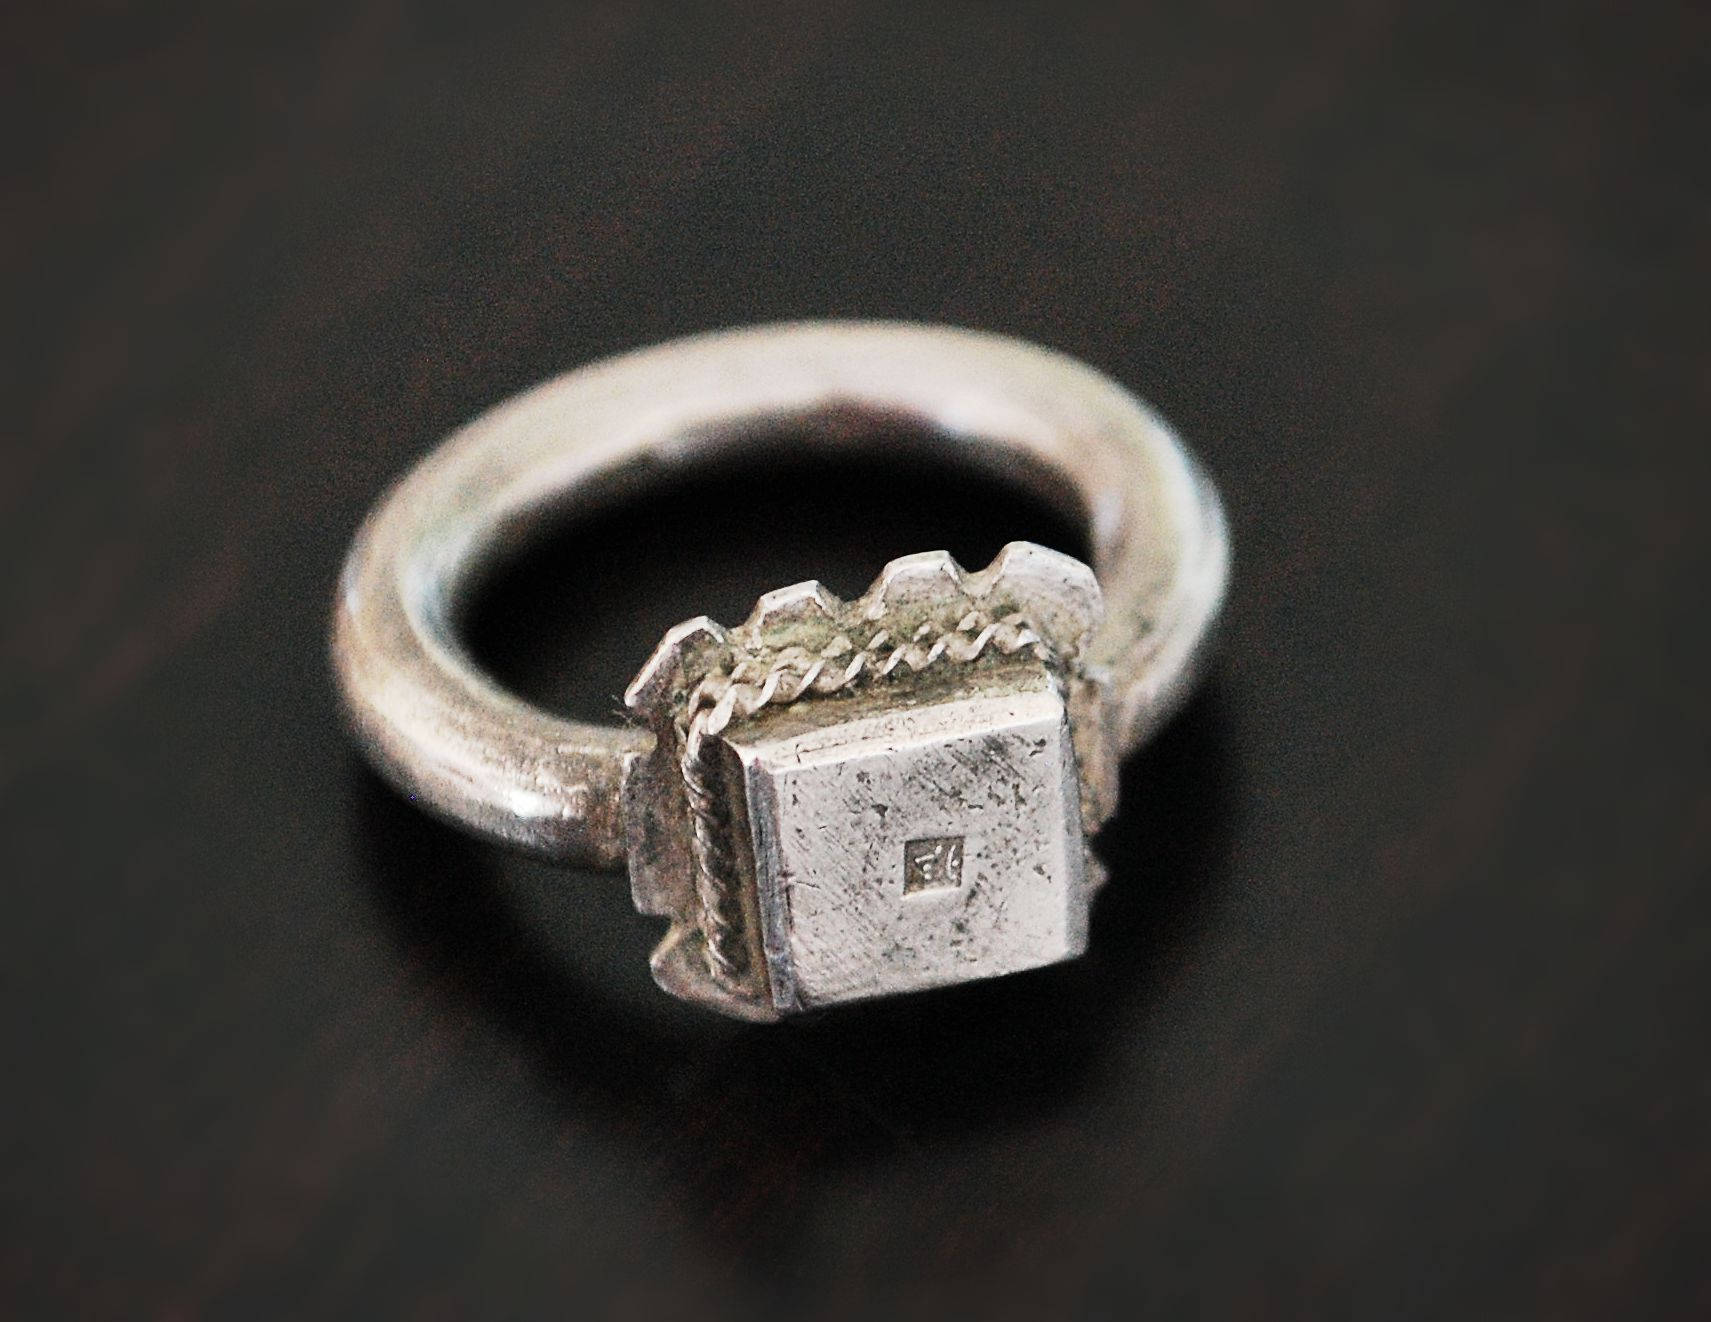 Antique Ethiopian Silver Ring - Size 7.5